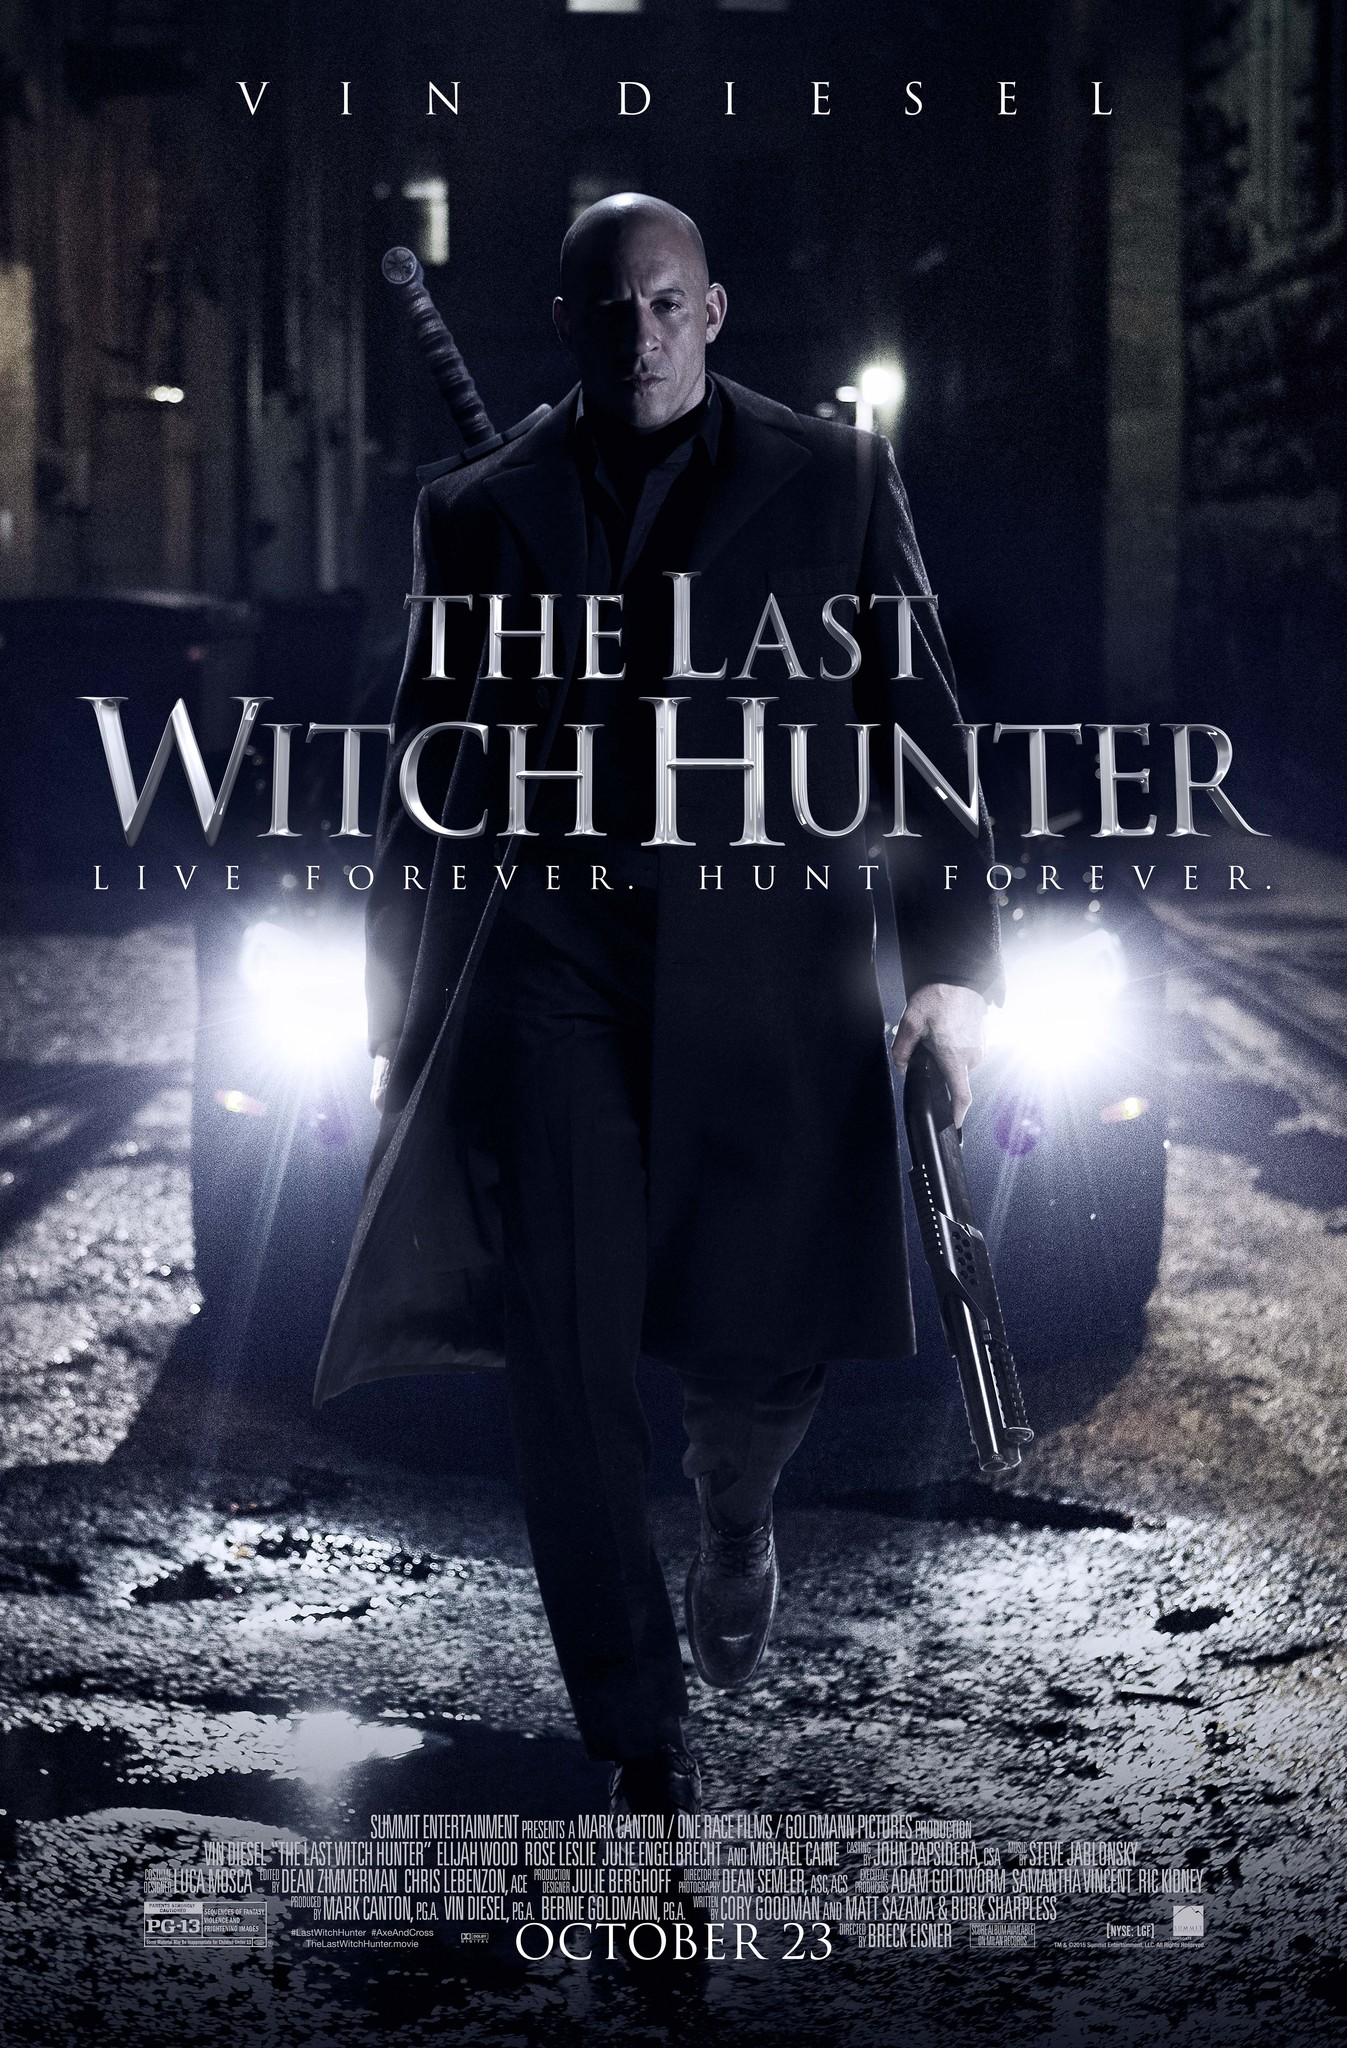 The Last Witch Hunter 2015 Imdb